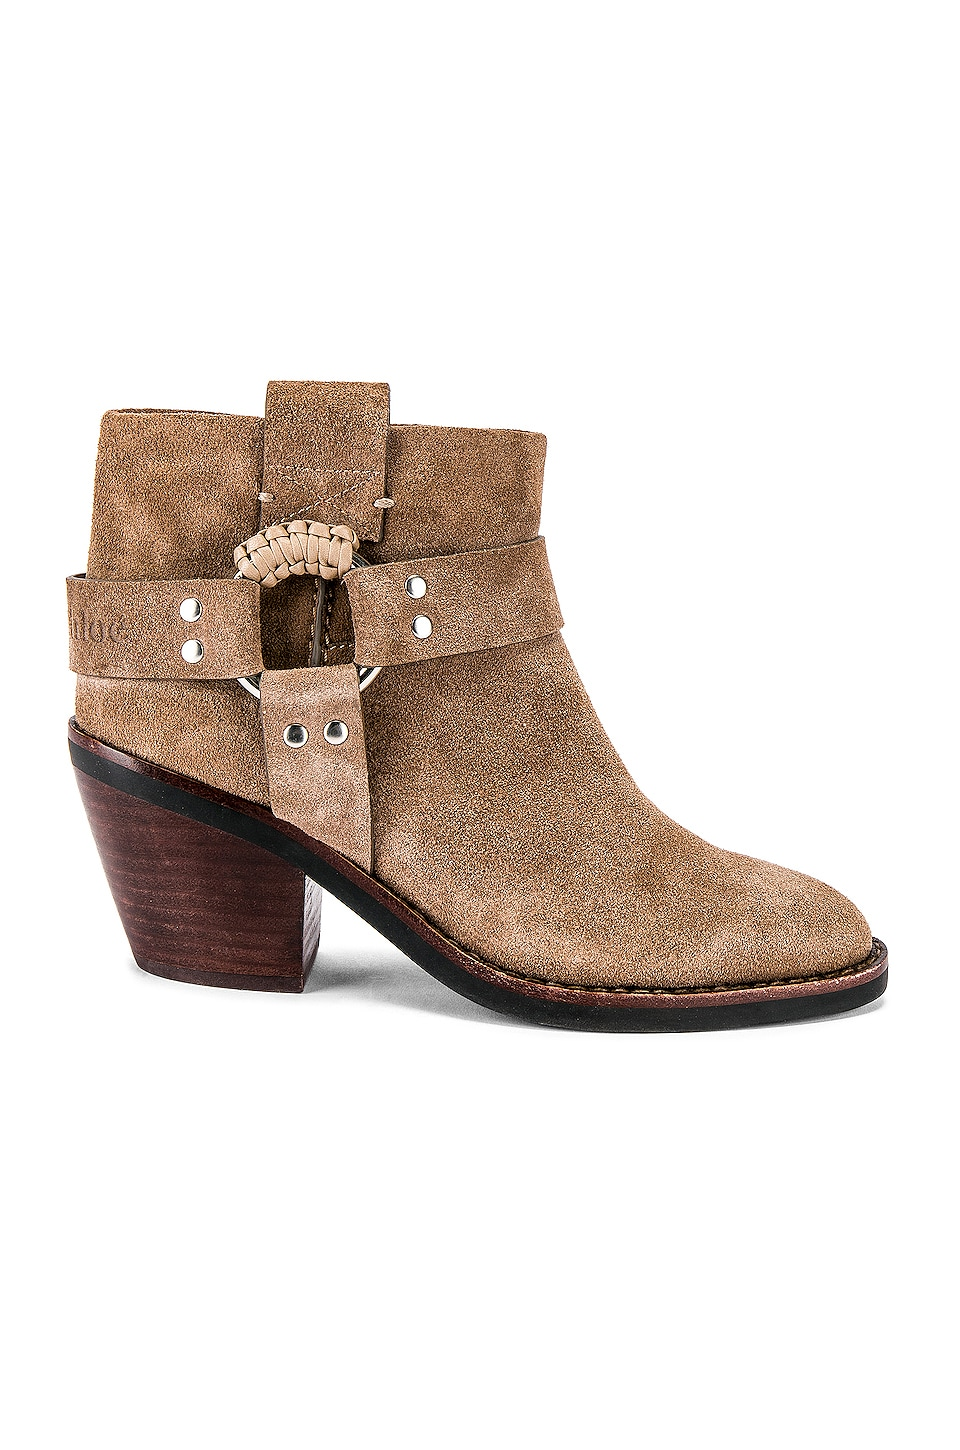 See By Chloe Western Bootie in Taupe